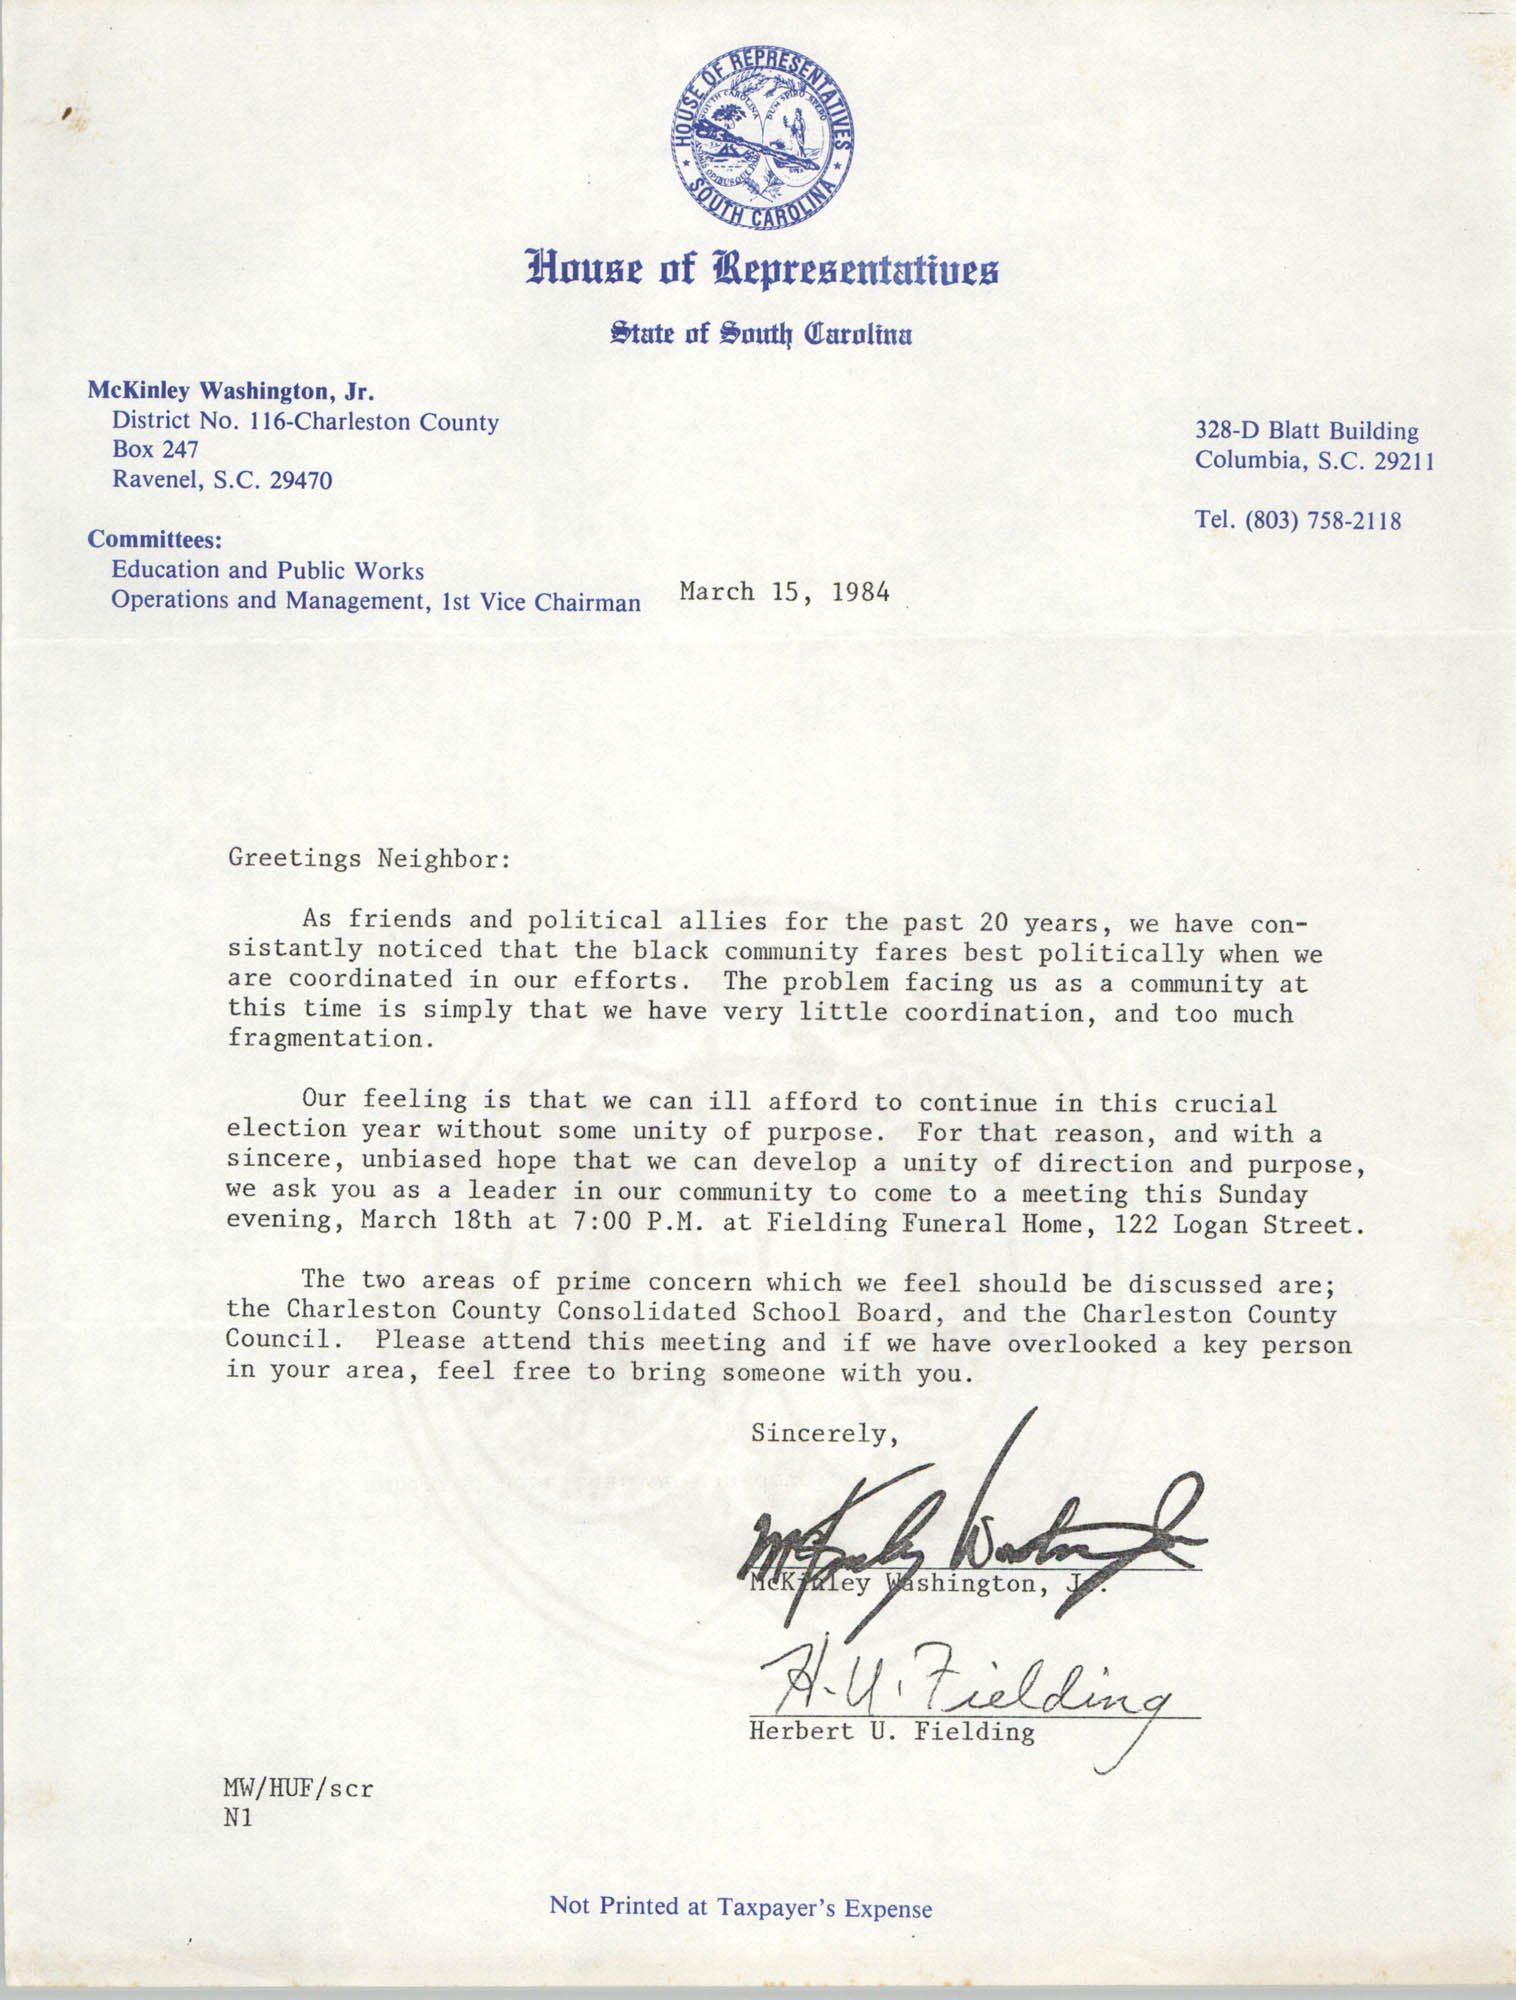 Letter from McKinley Washington, Jr. and Herbert U. Fielding, March 15, 1984